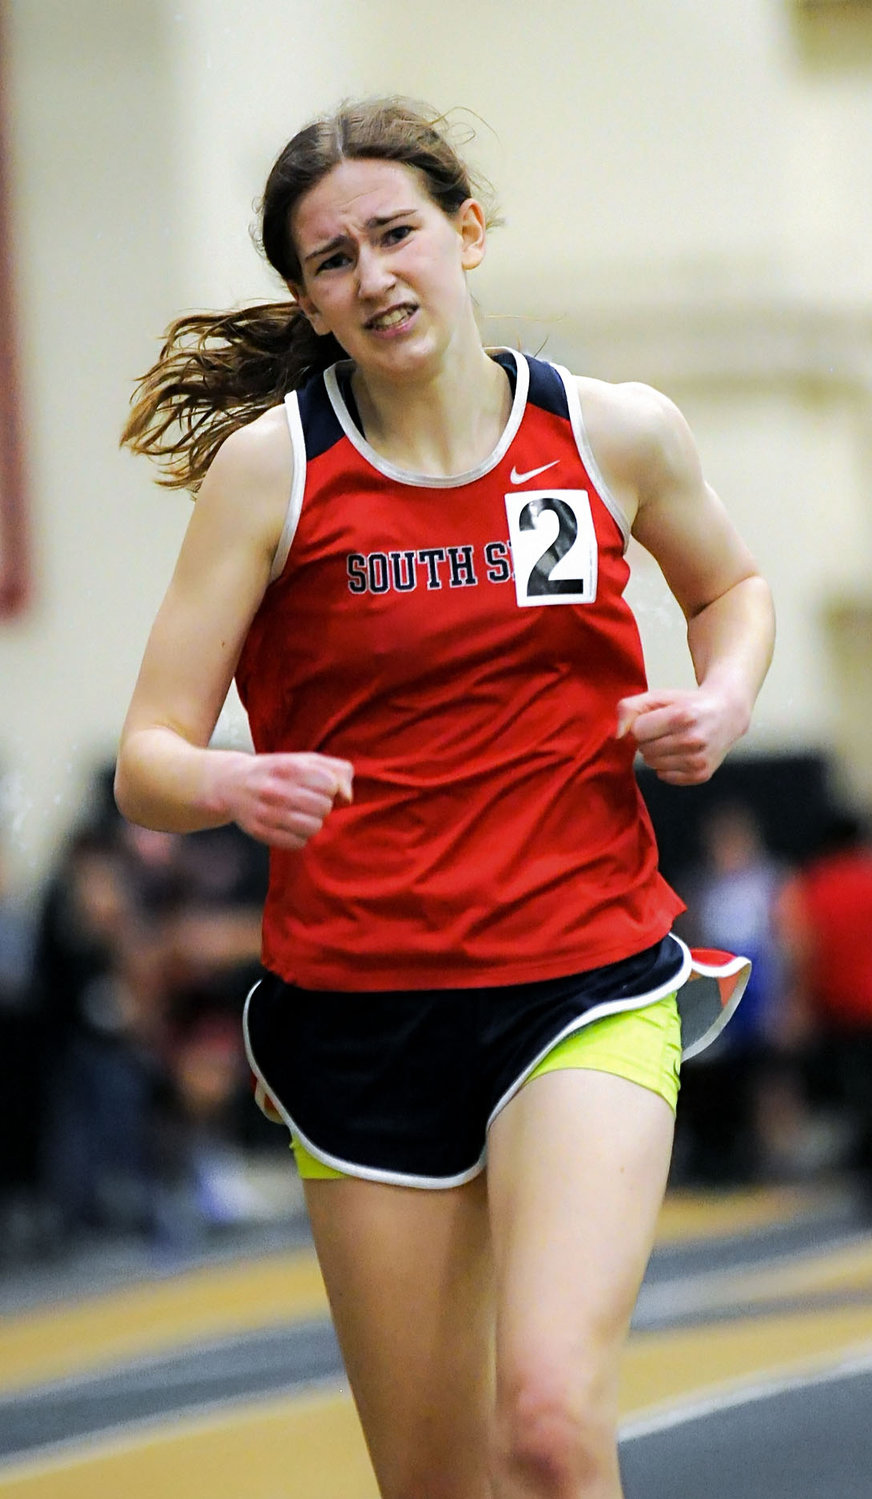 Carly Woelfel, the team's captain, was also a county champion in the 3,000-meter race.